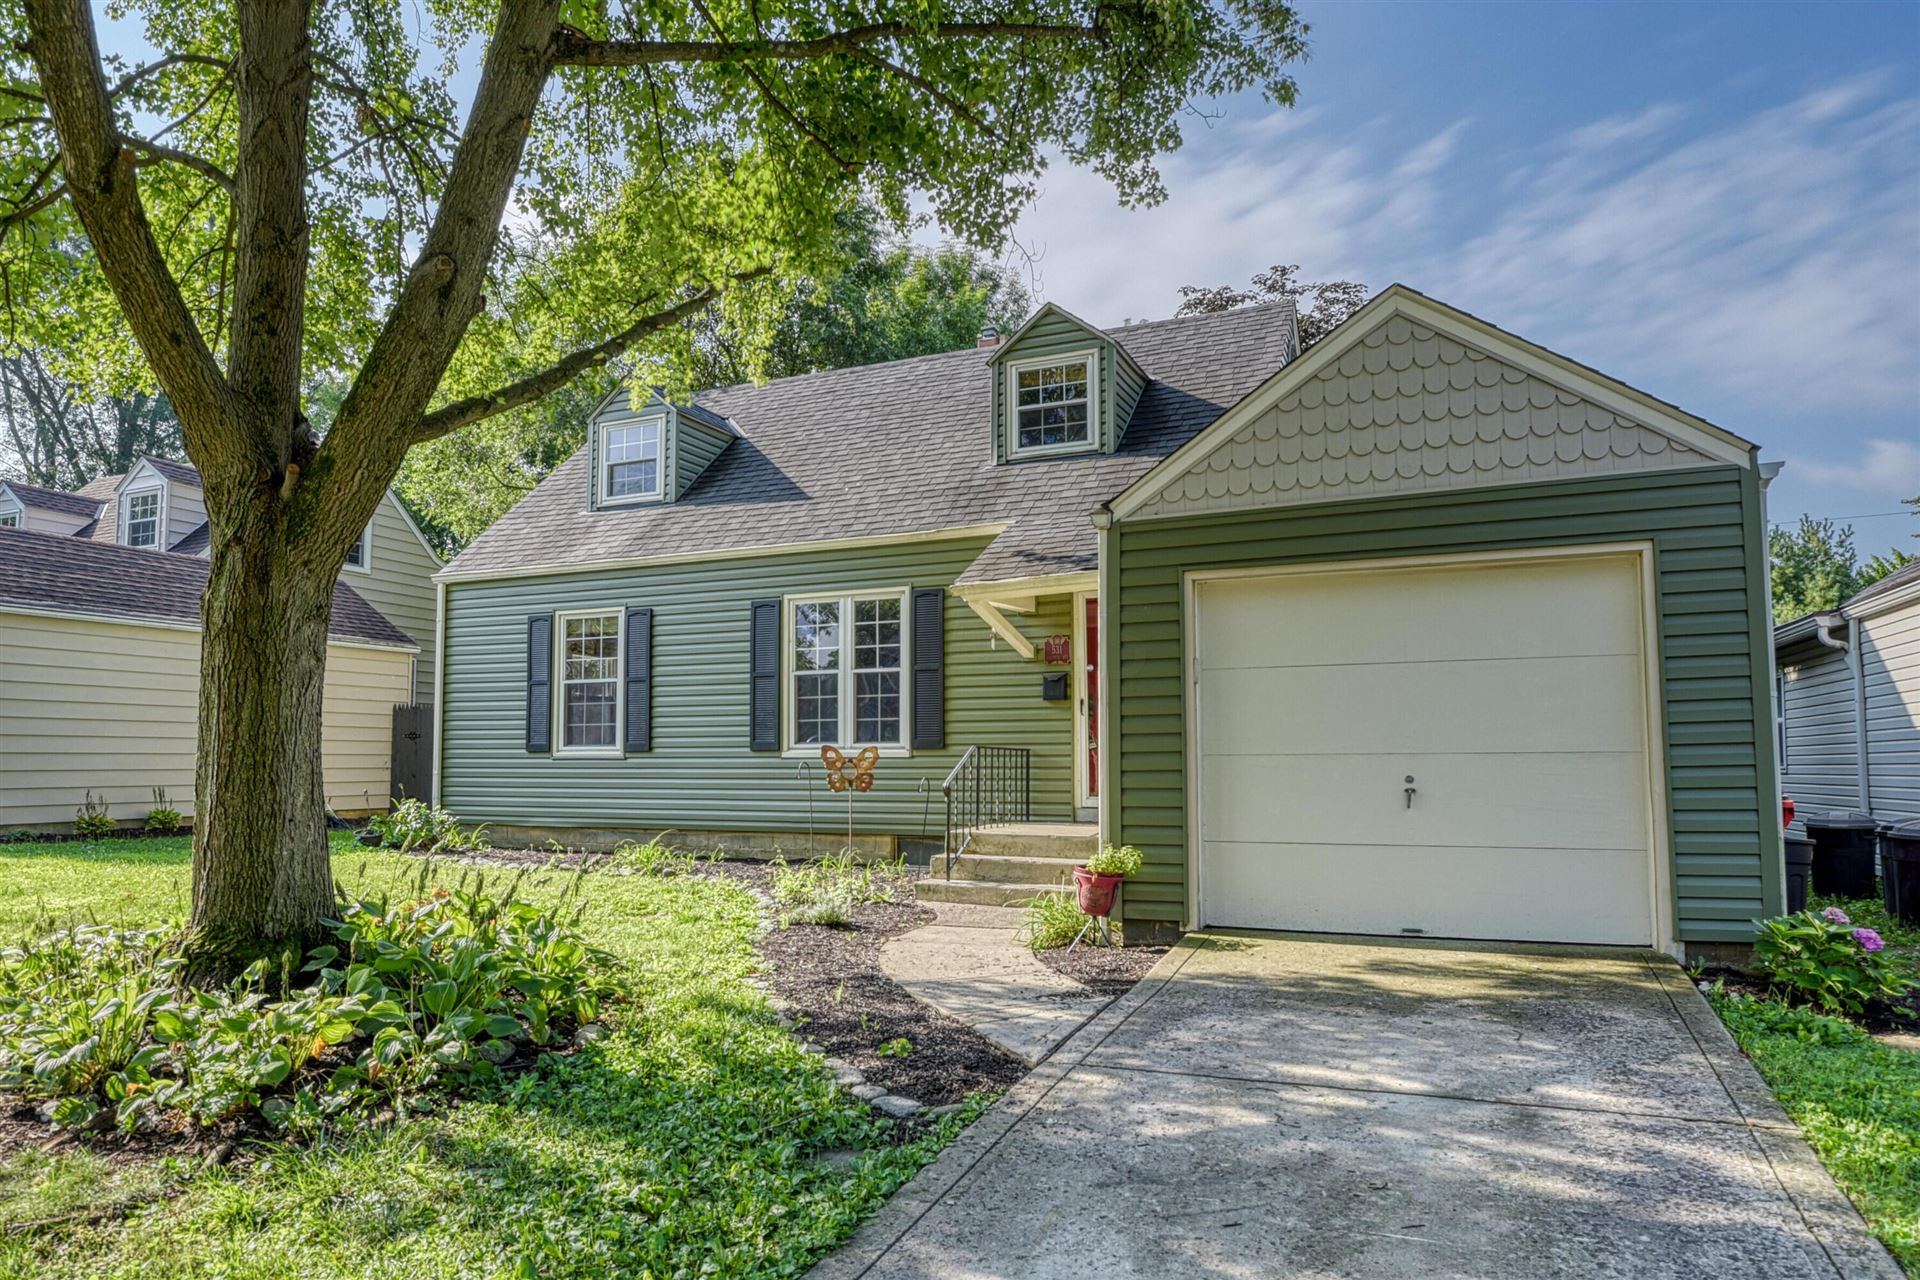 Photo of 531 Colonial Avenue, Worthington, OH 43085 (MLS # 221025933)